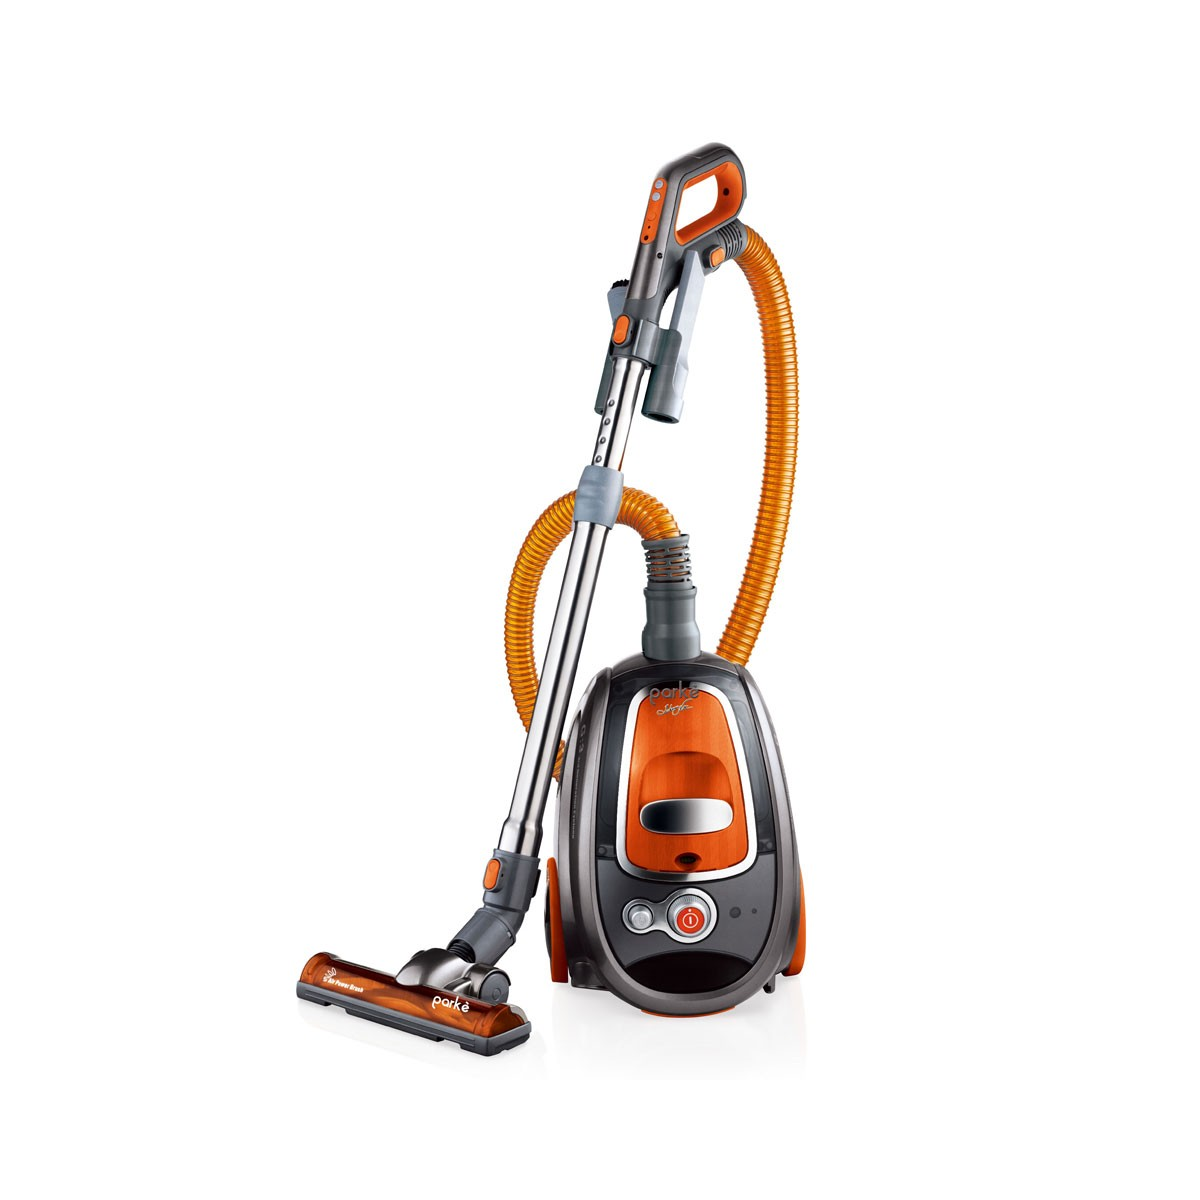 Canister Vacuum Cleaner Parke With Cyclonic Technology